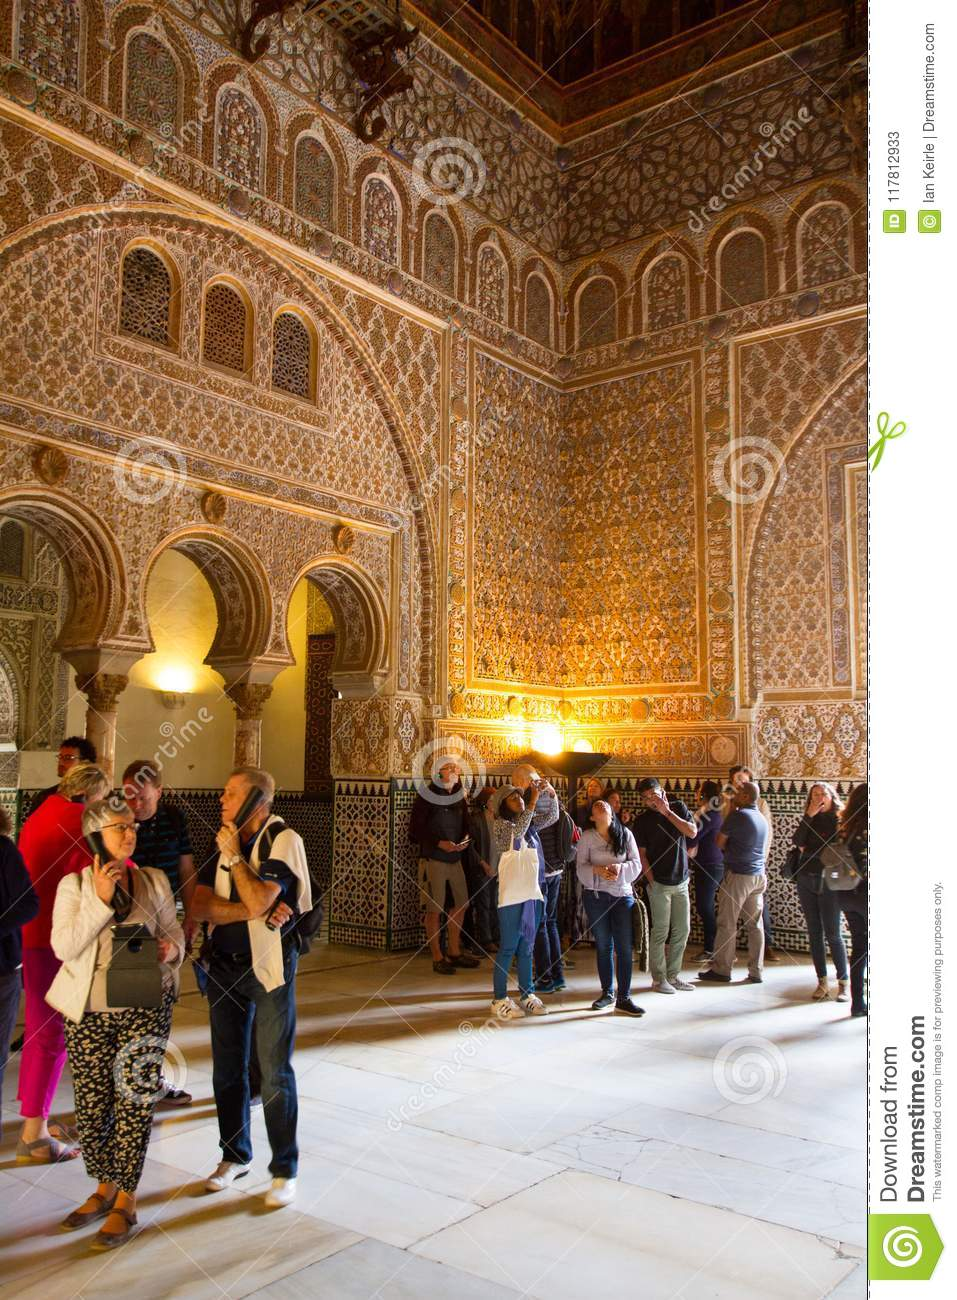 tourists viewing the islamic architecture of the alcazar in seville